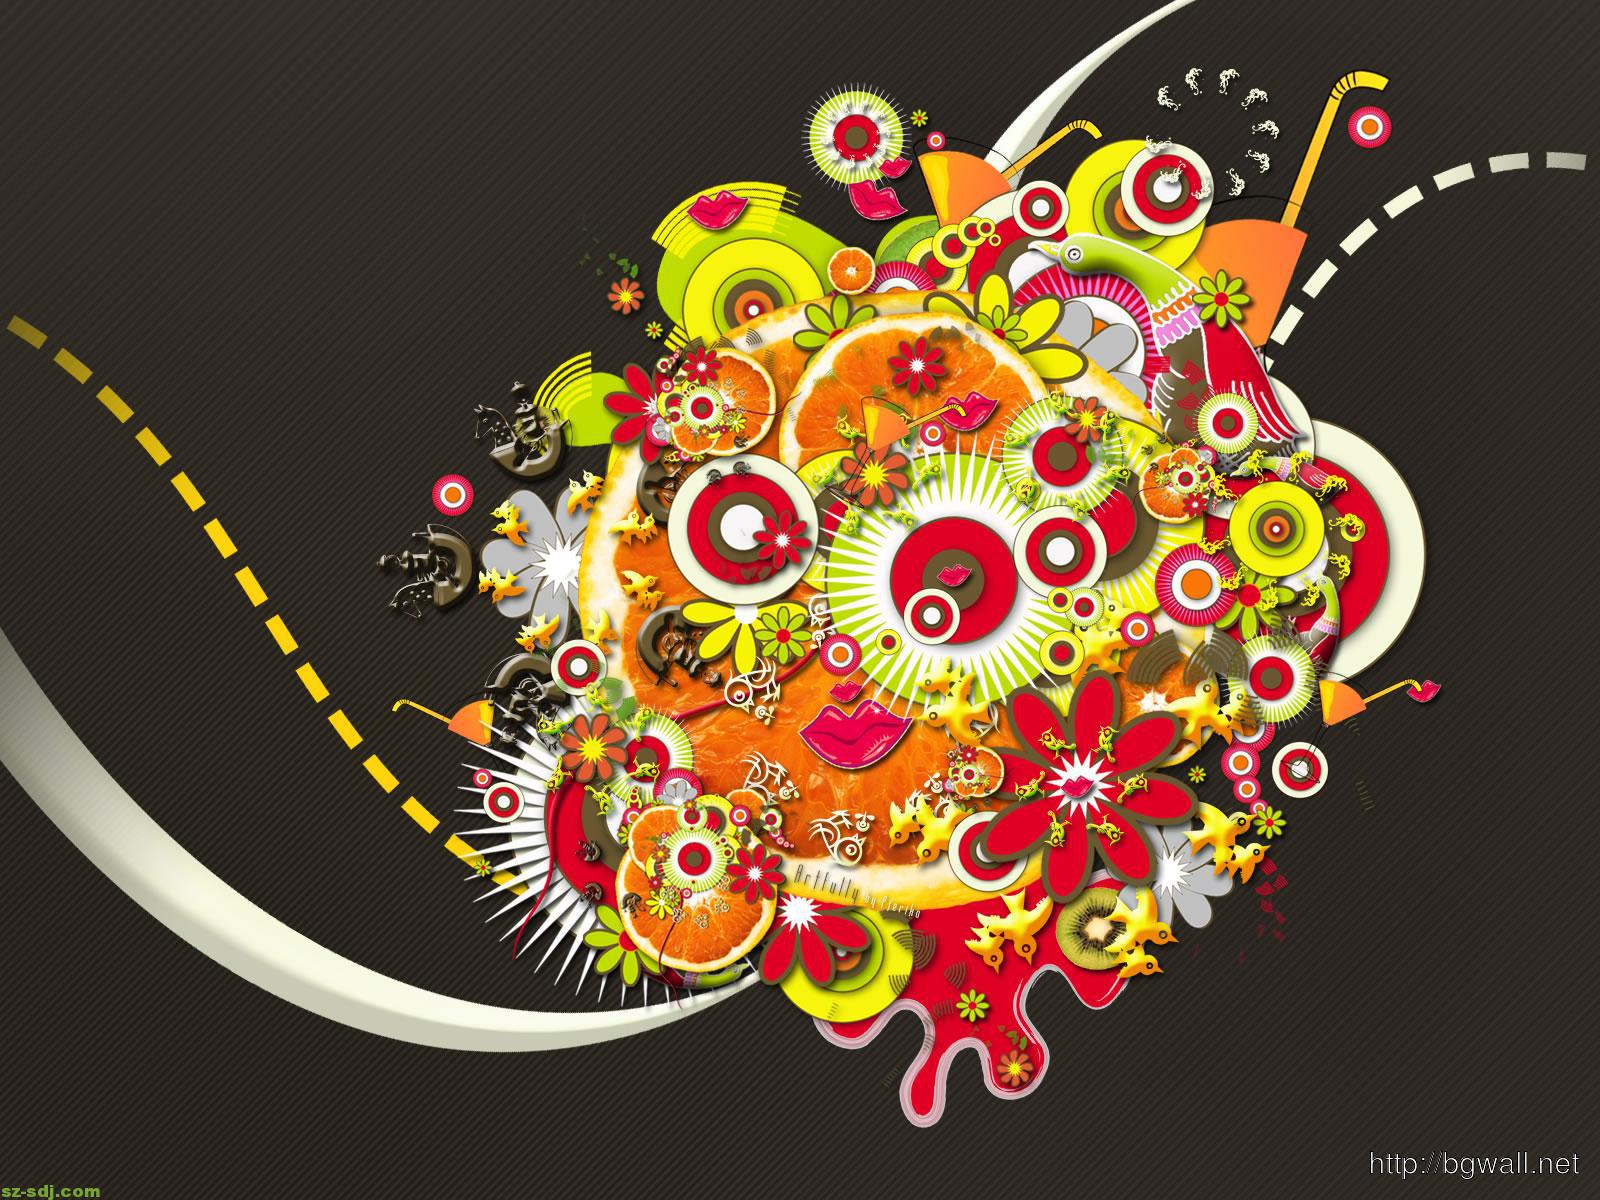 abstract-art-design-wallpaper-high-resolution